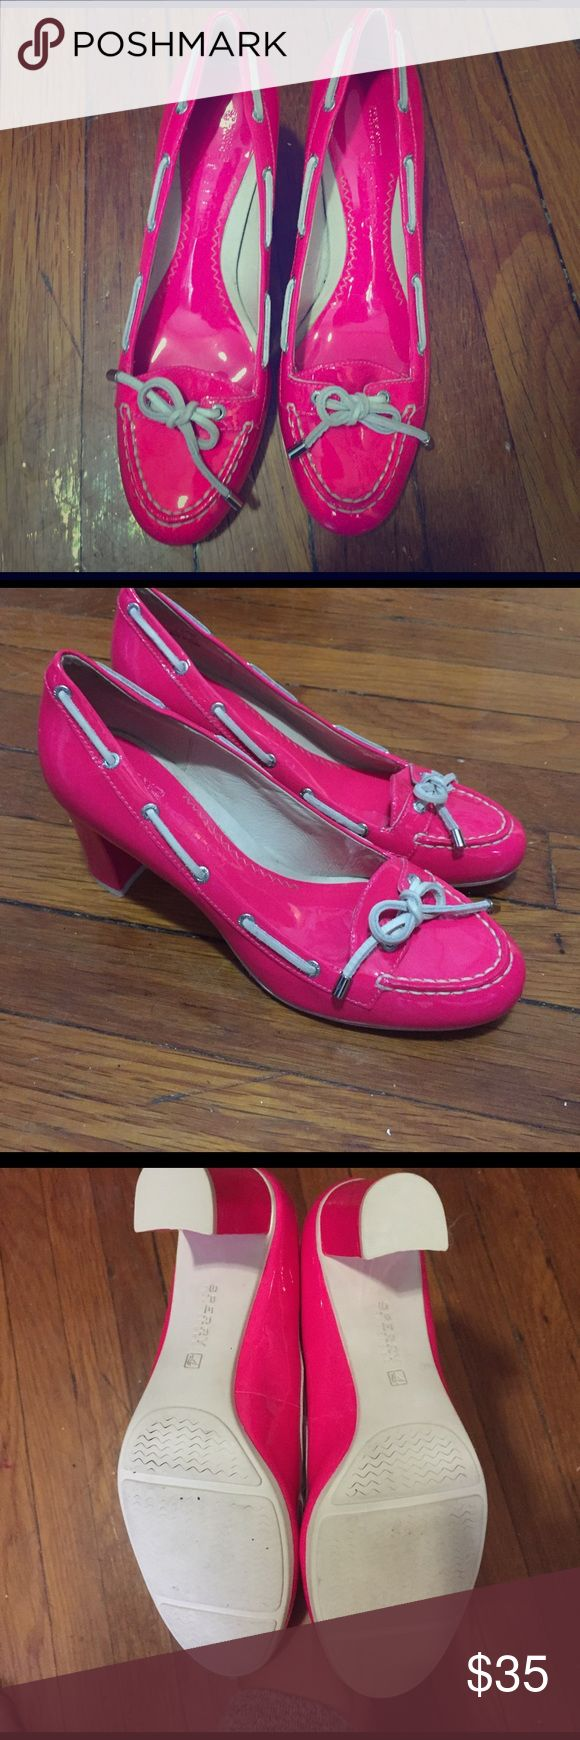 New hot neon pink sperry top sider heels nwot Very Elle Woods of legally blonde! Super cute boat shoes turned trendy heels! Super preppy girly style! Never worn! Perfect condition! Country club chic! Super fluorescent and trendy. Retro chic!           Tags:  Blair Waldorf, Paris Hilton, Cameron Diaz, Kate spade, electric, neon, 80s, cosmic, Nine West, banana republic, nasty gal, tobi, go Jane, urban outfitters, mango, Bebe, Bcbg, Ralph Lauren, gap, Nantucket, cape cod, Martha's Vineyard…